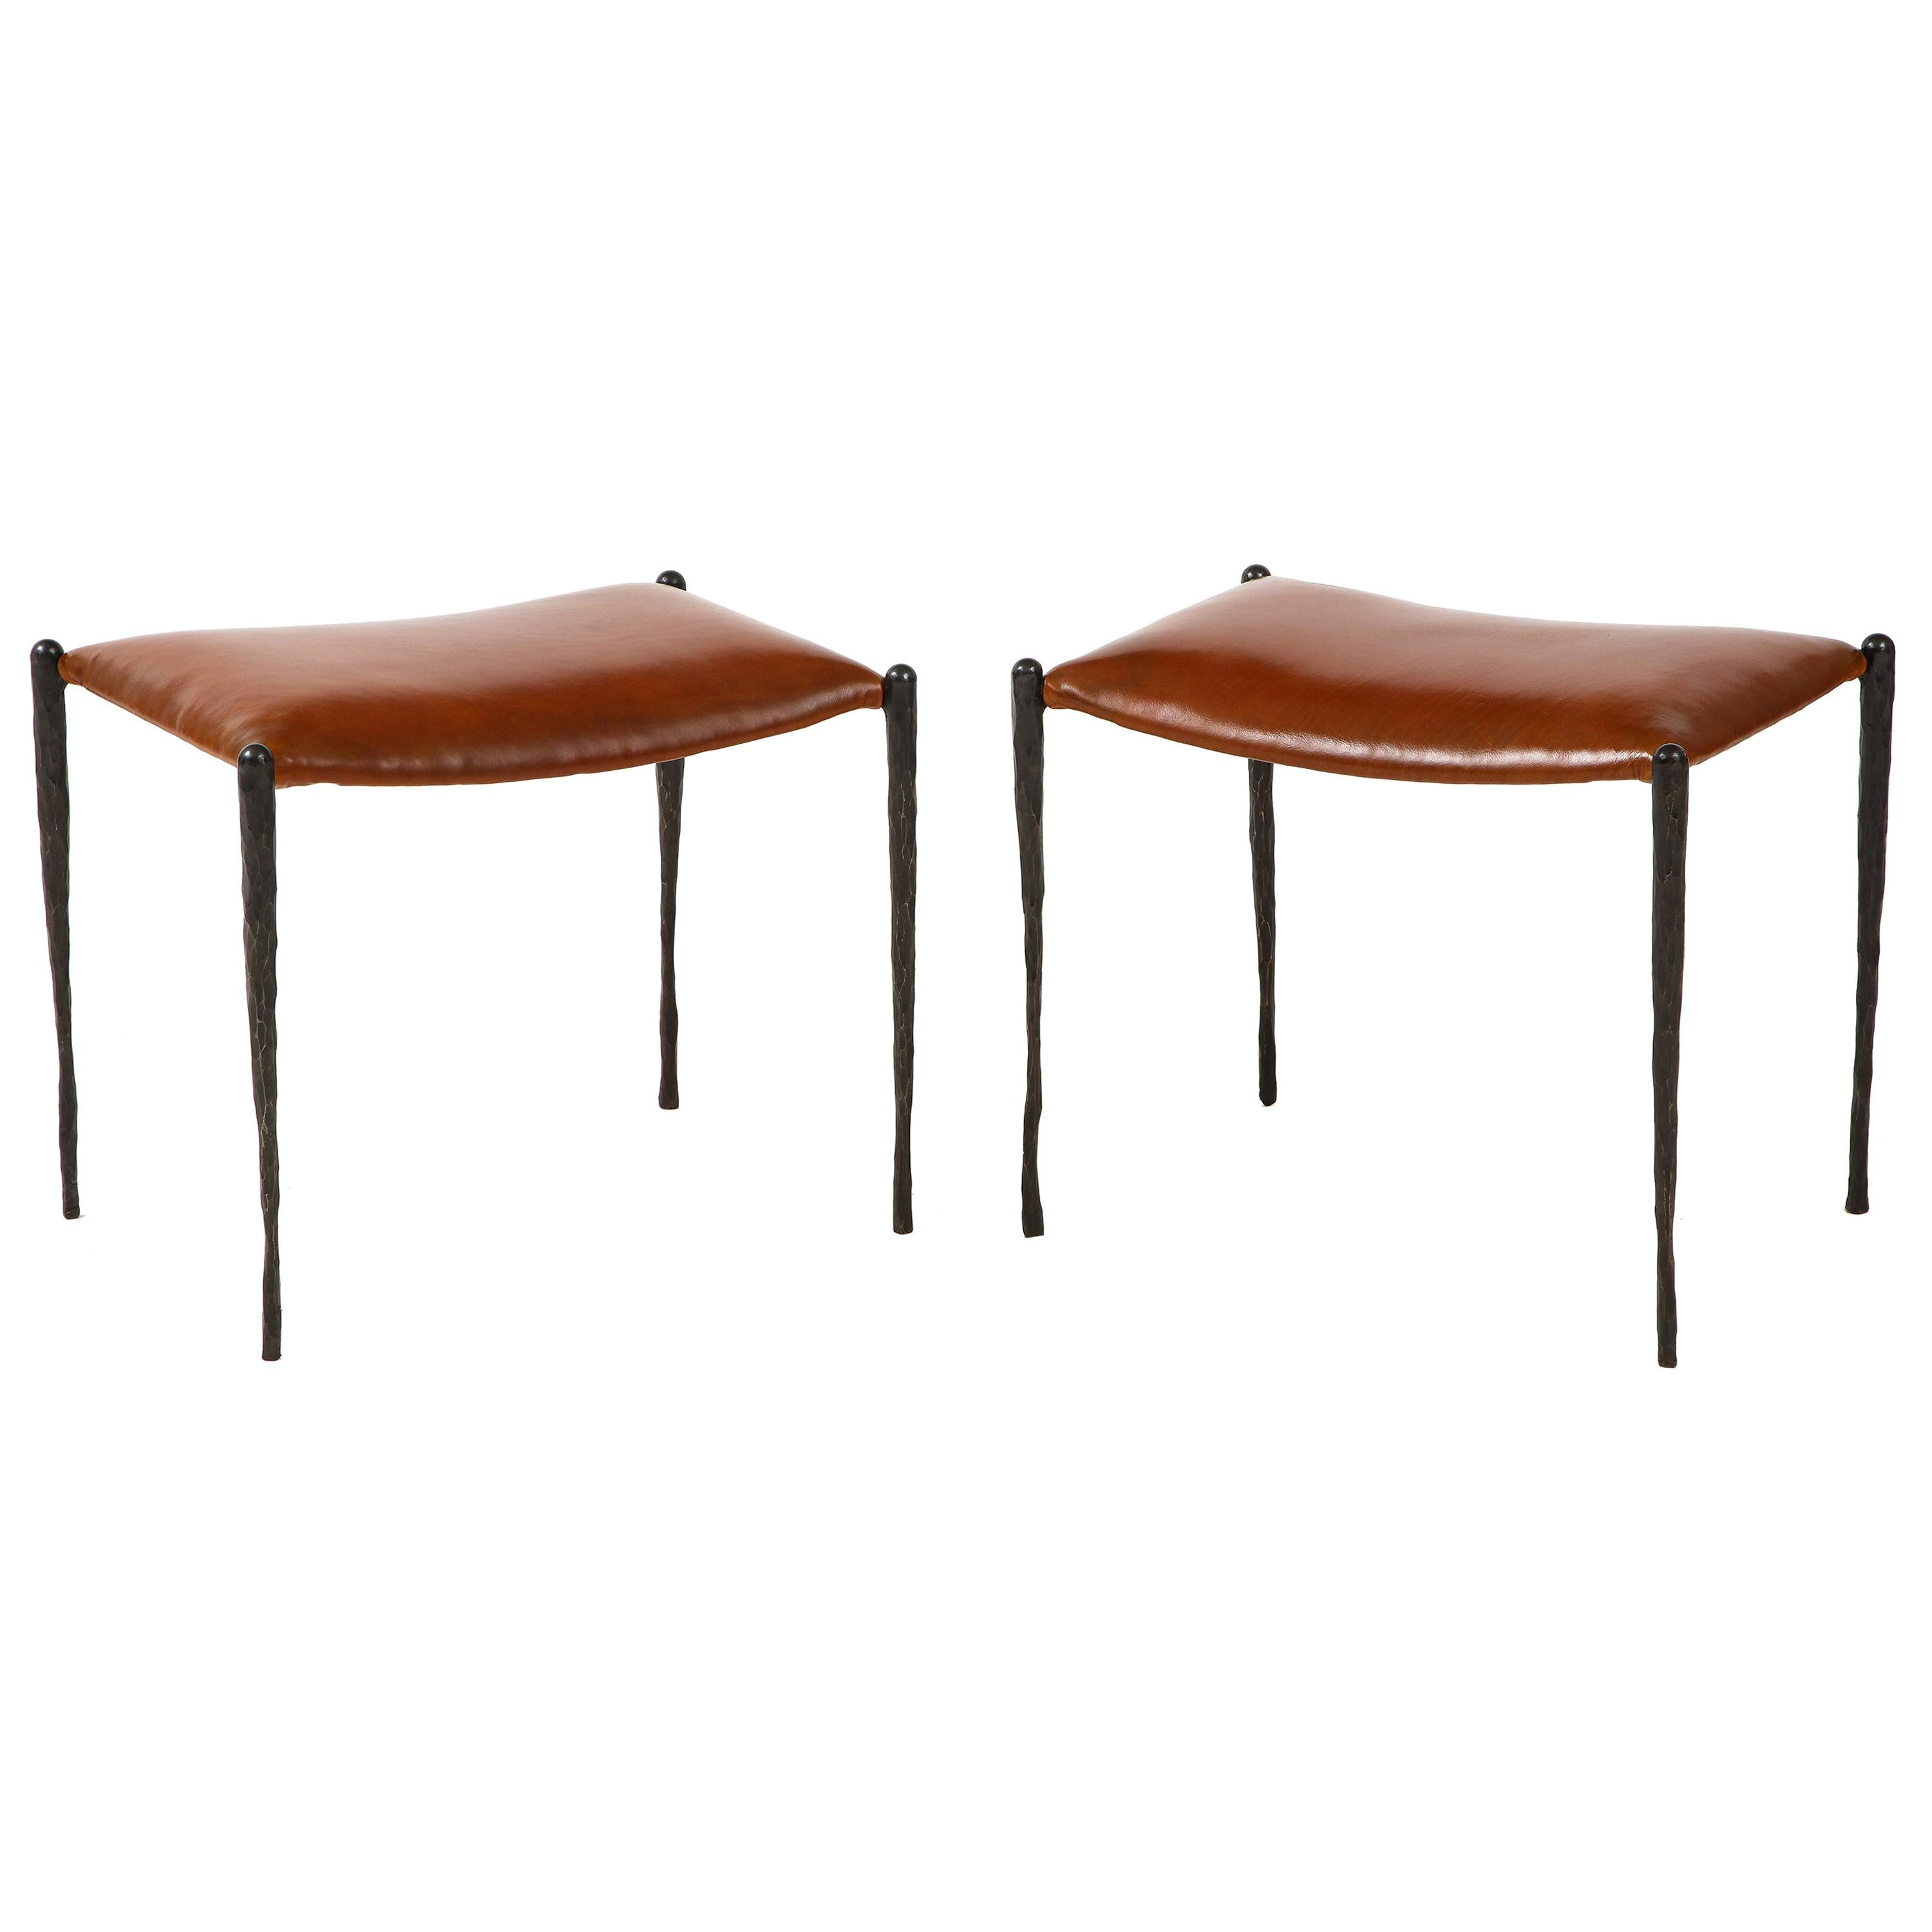 Pair of Handmade Bronze Benches with Leather Seats